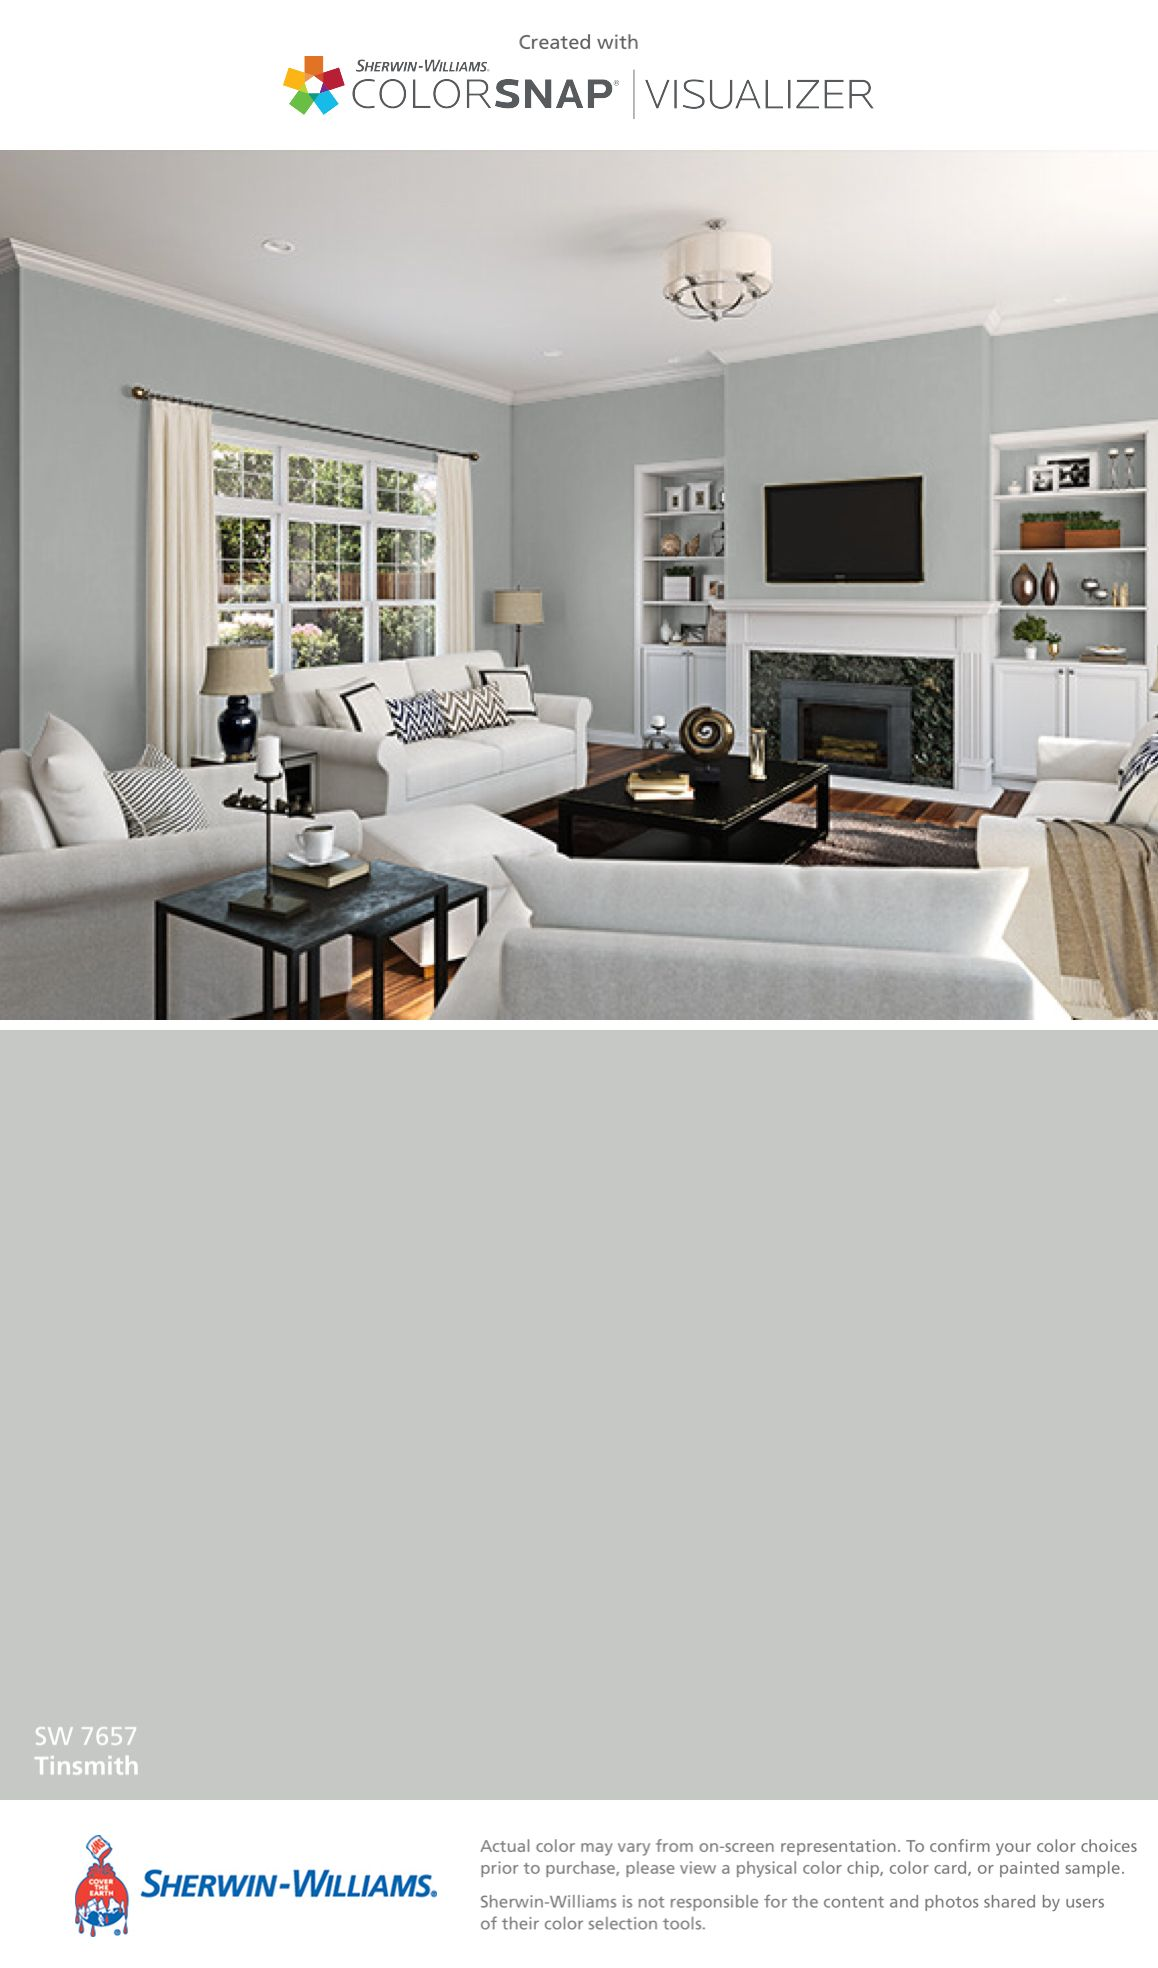 I Found This Color With Colorsnap Visualizer For Iphone By Sherwin Williams Tinsmit Paint Colors For Home Sherwin Williams Paint Colors Matching Paint Colors